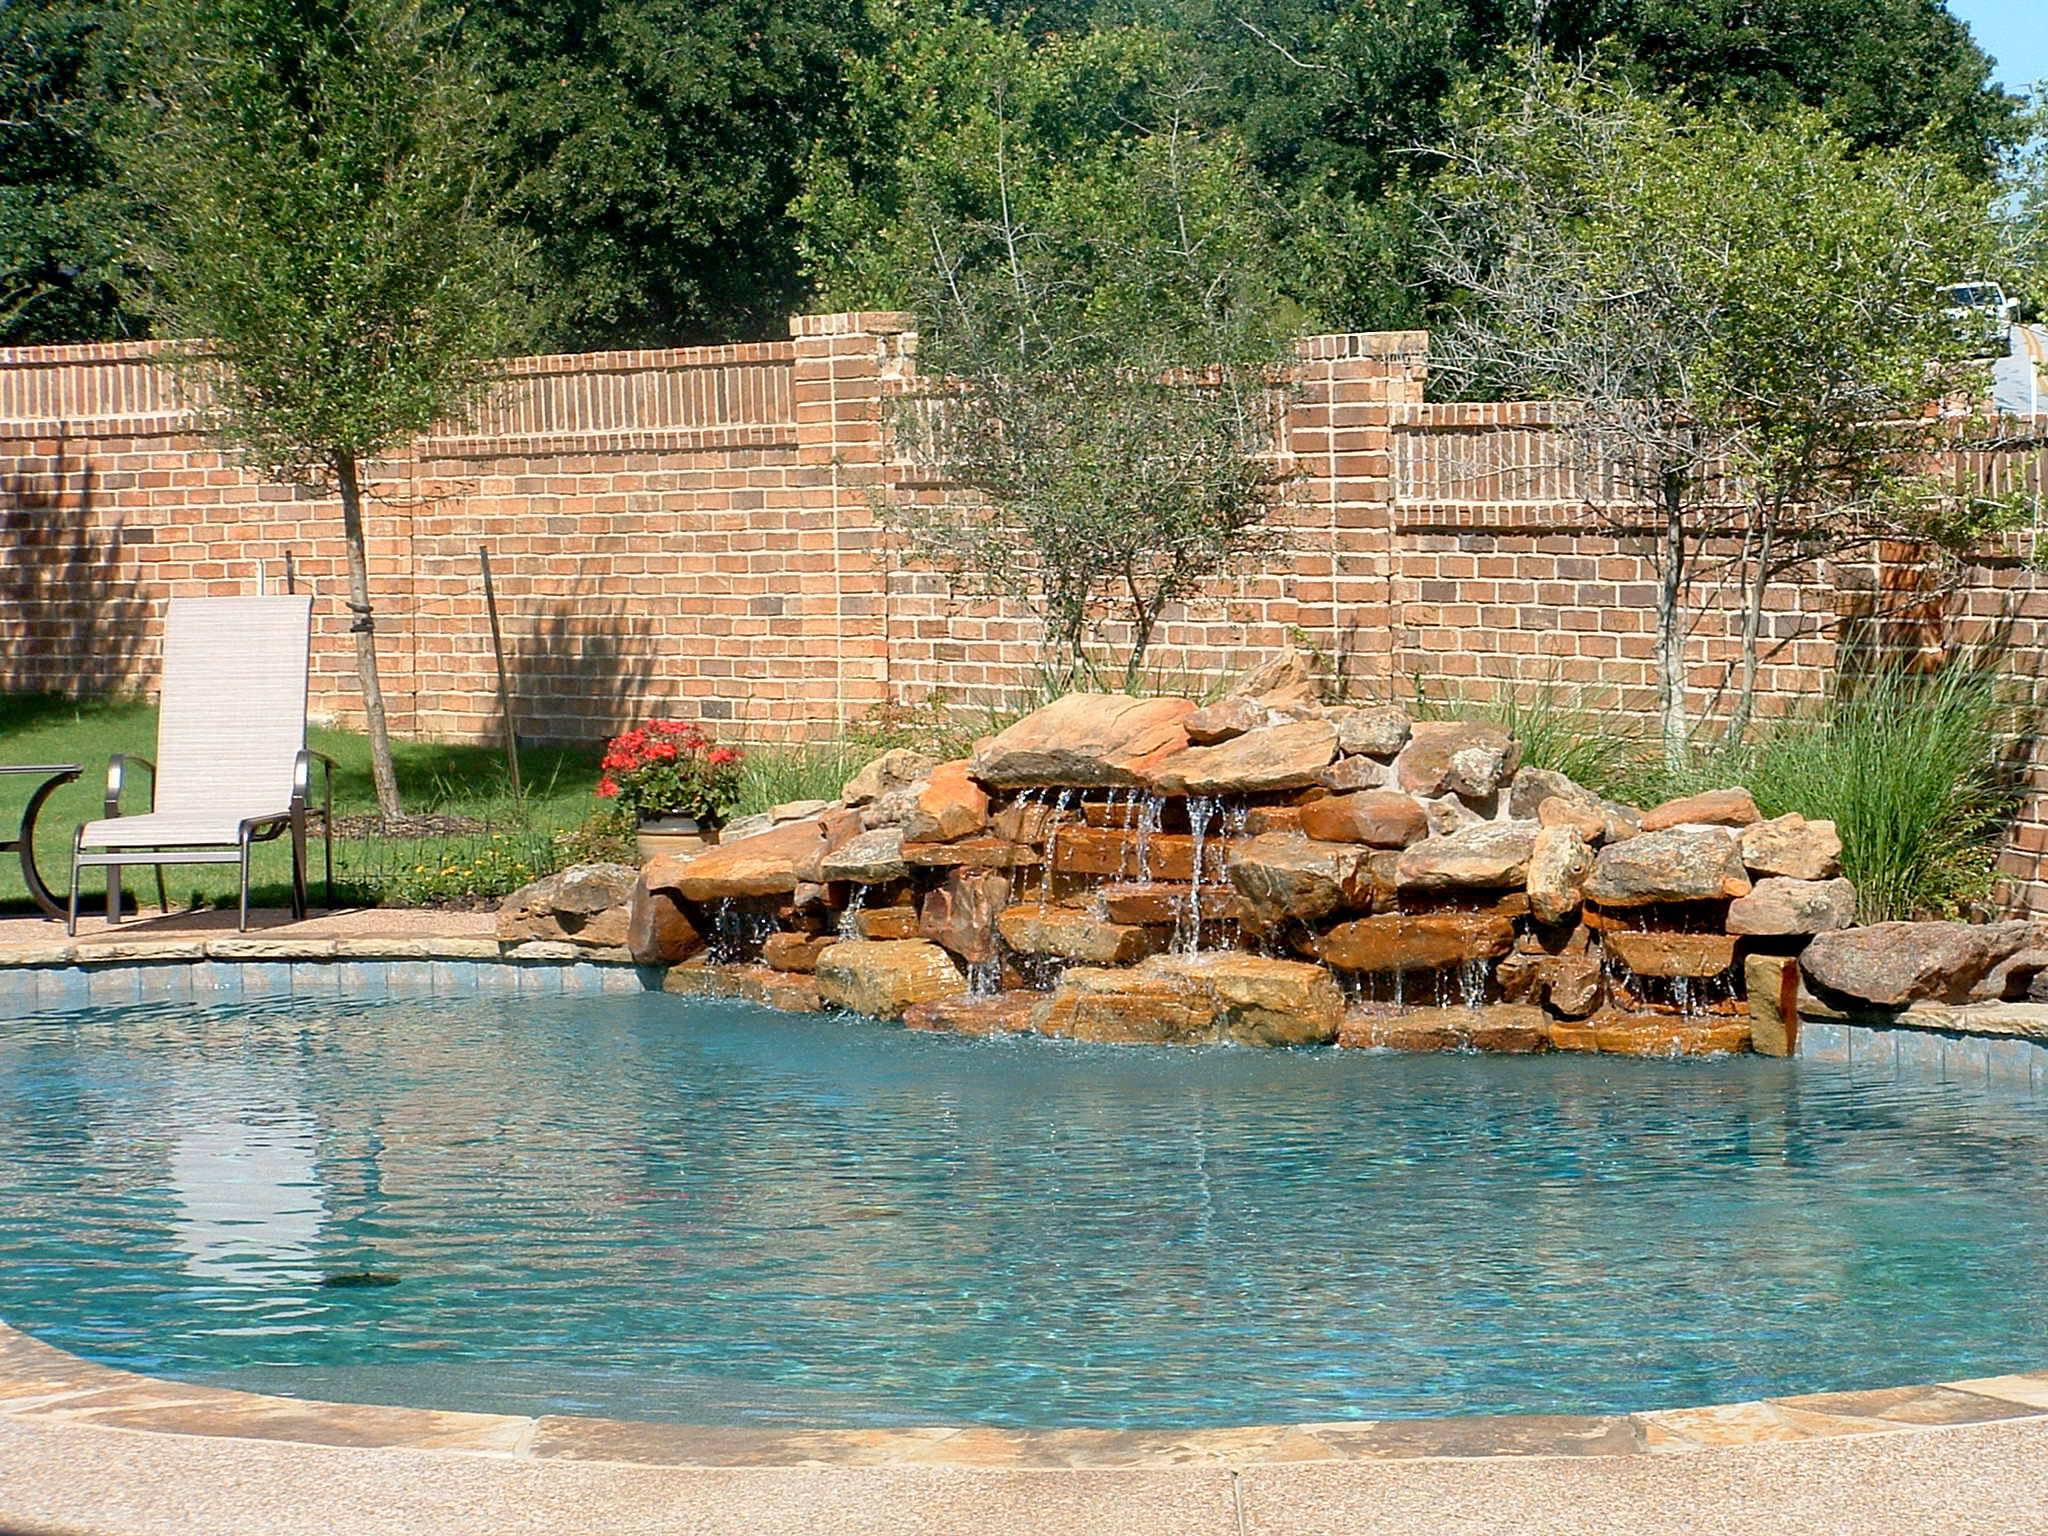 Building a natural swimming pool - Custome Natural Swimming Pool With Adorable Waterfall And White Chair